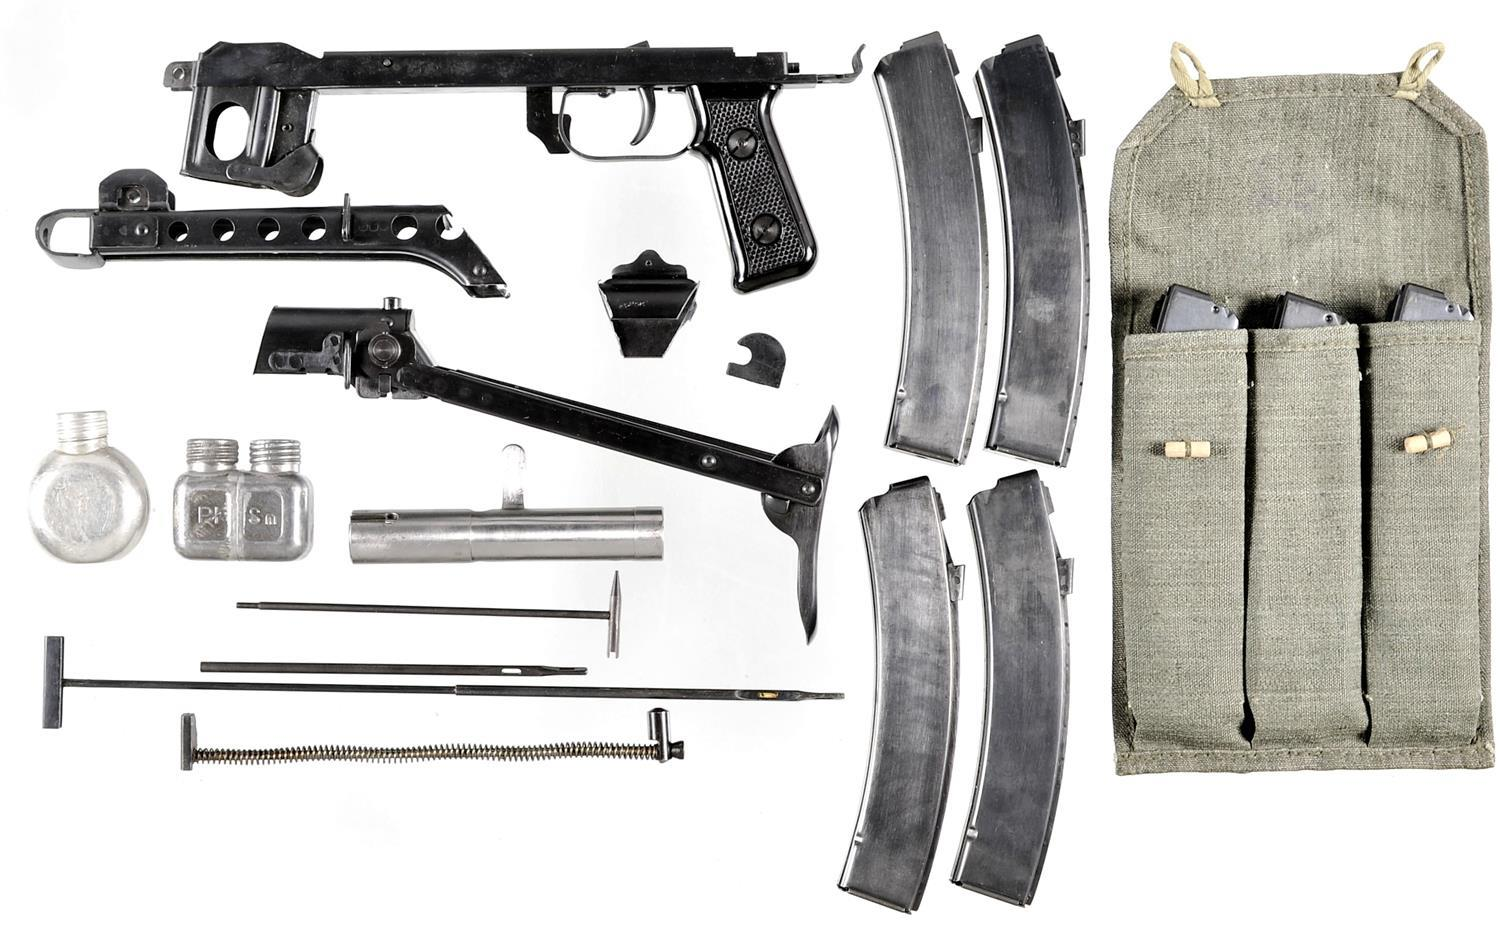 Soviet PPS43 Sub Machine Gun Parts with Magazines and Accessorie